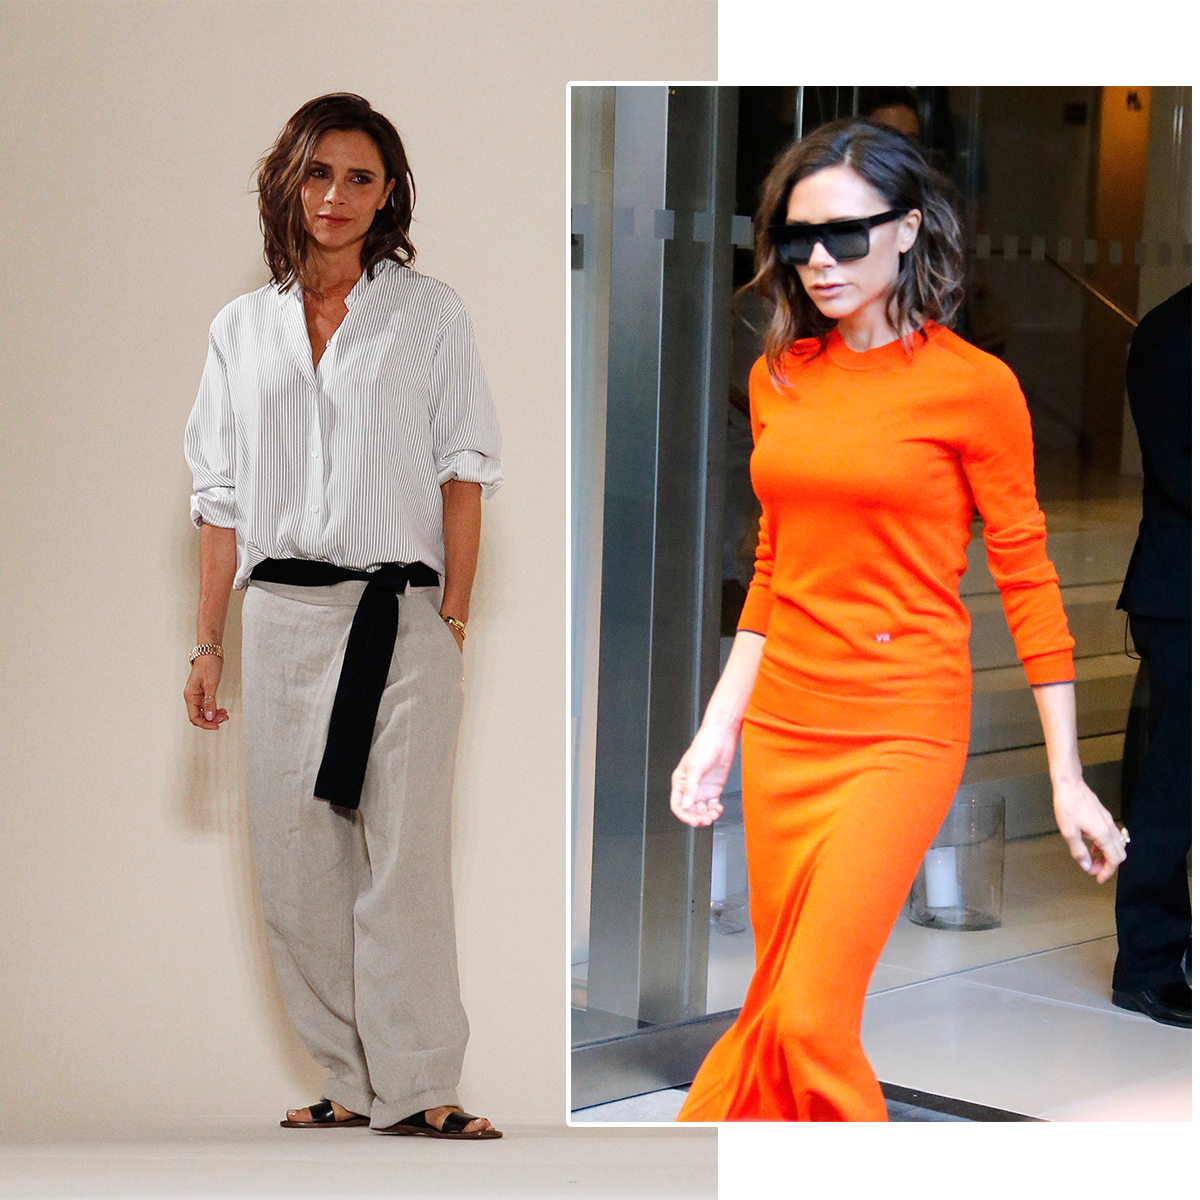 victoria-beckham-posh-style-new-york-fashion-week-3